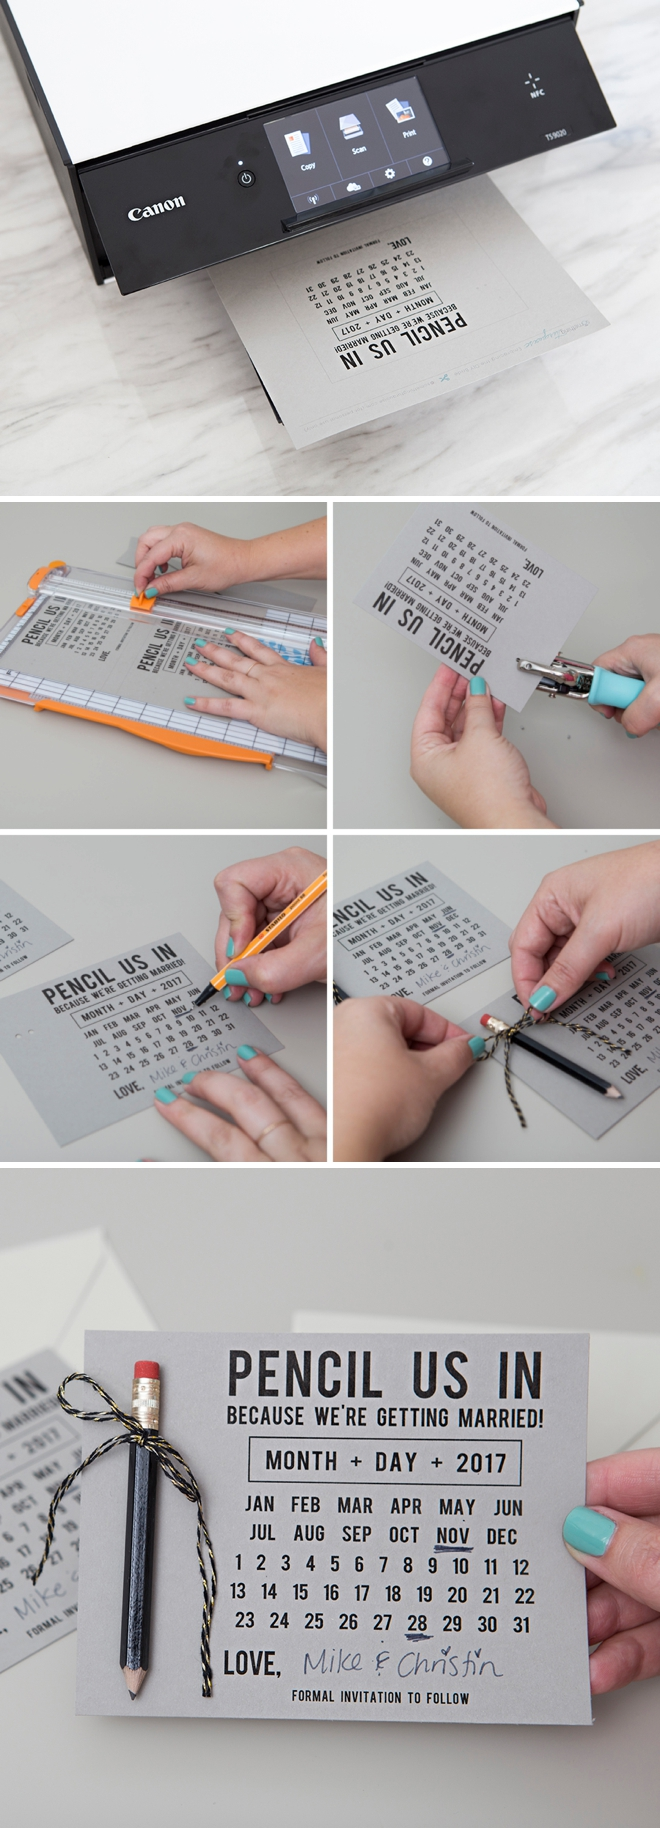 Learn how to make your own Pencil Us In Save the Date invitations!